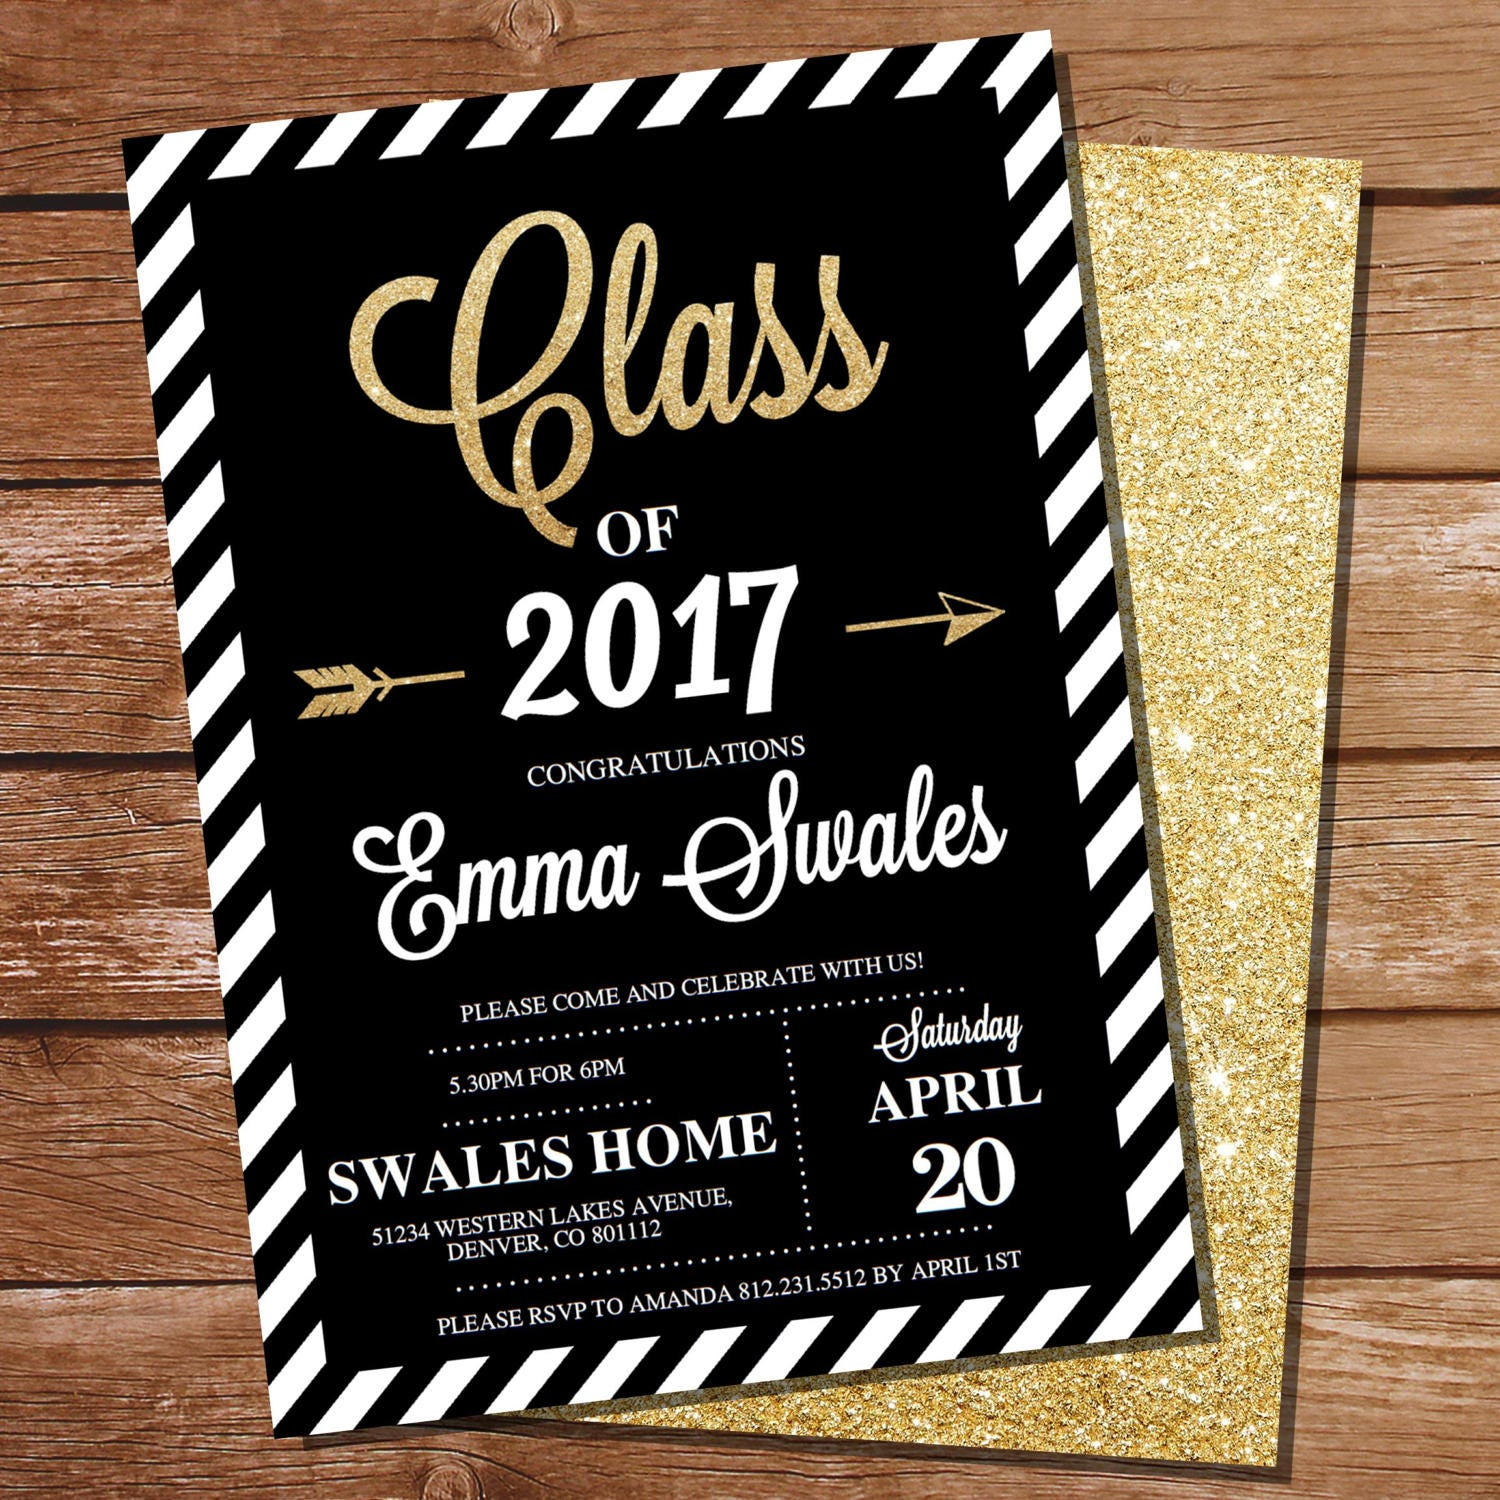 Graduation invitation – Black and Gold Graduation Invitations